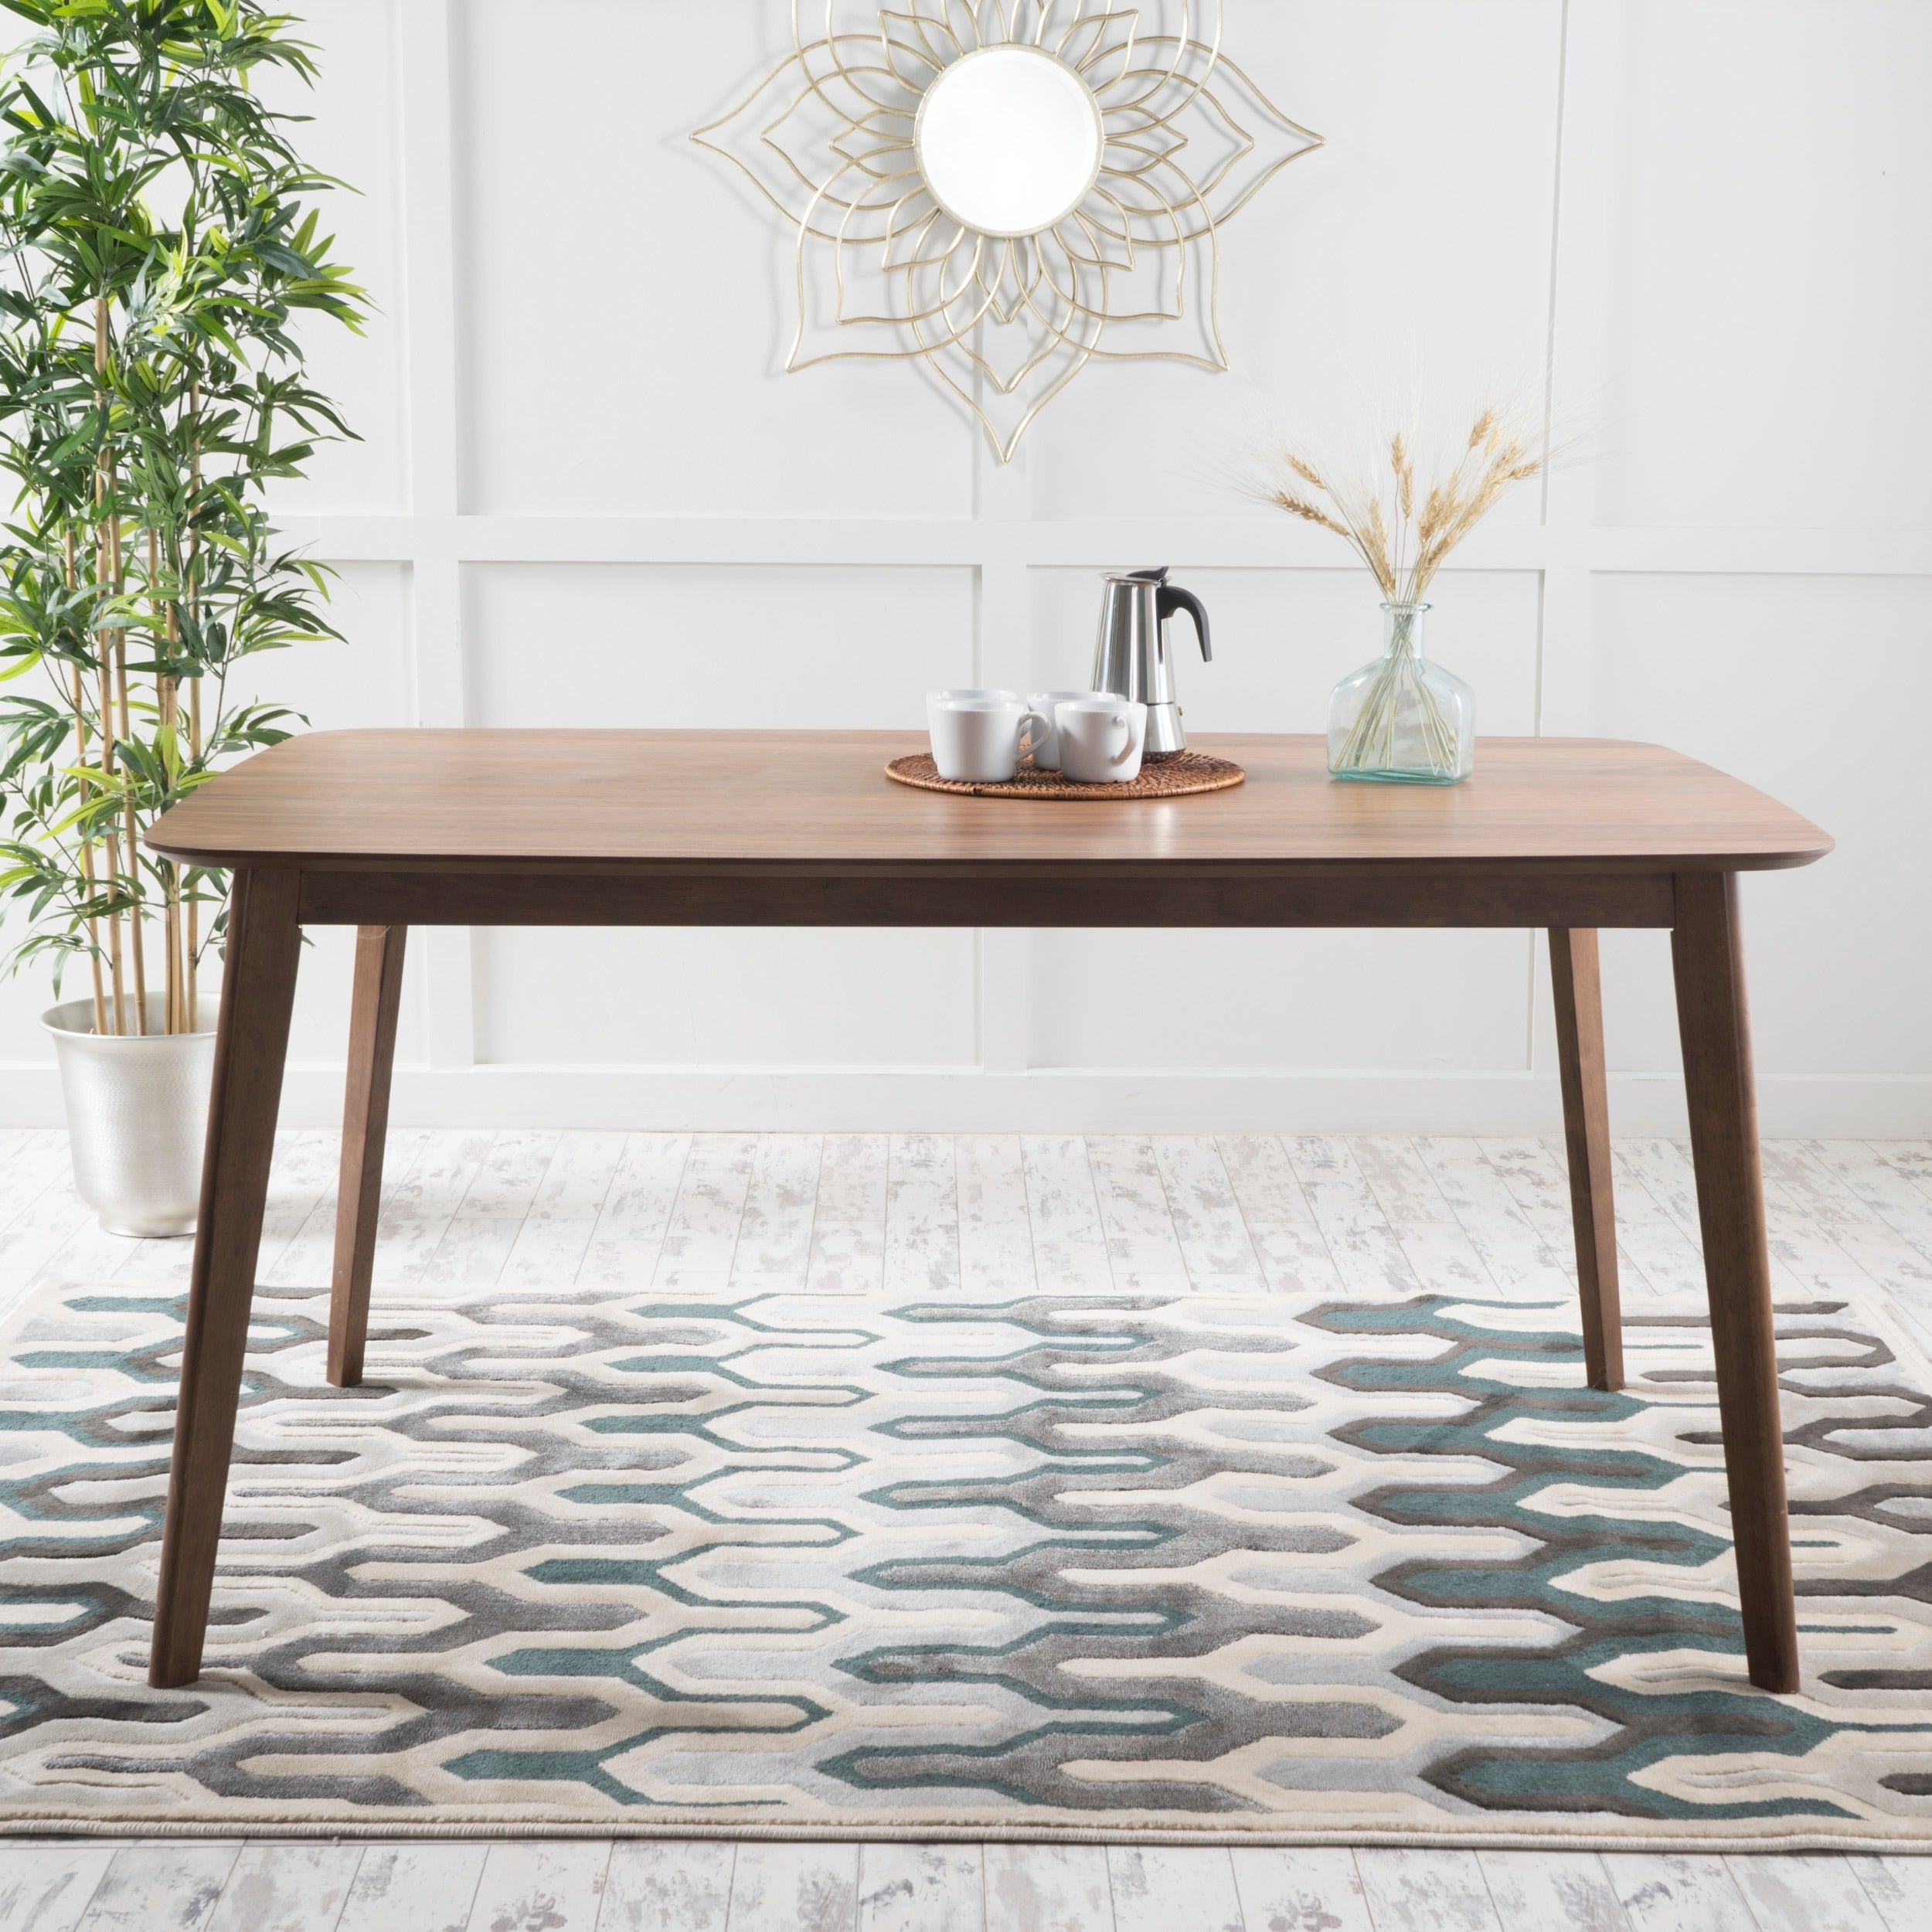 Shop nyala natural wood dining table by christopher knight home free shipping today overstock com 12816882